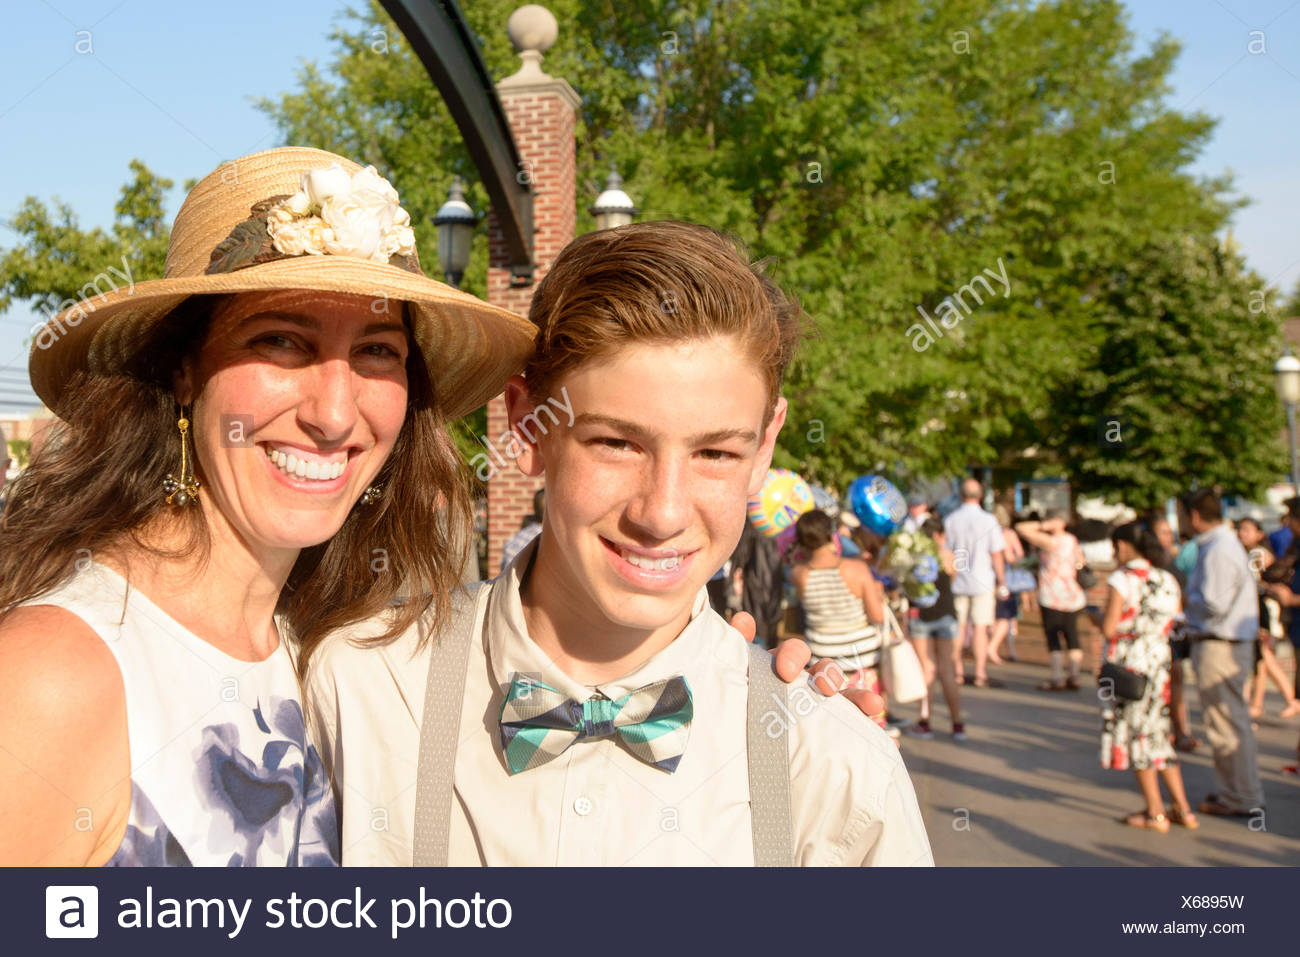 28425d597fe Mother With Child At Graduation Ceremony Stock Photos   Mother With ...